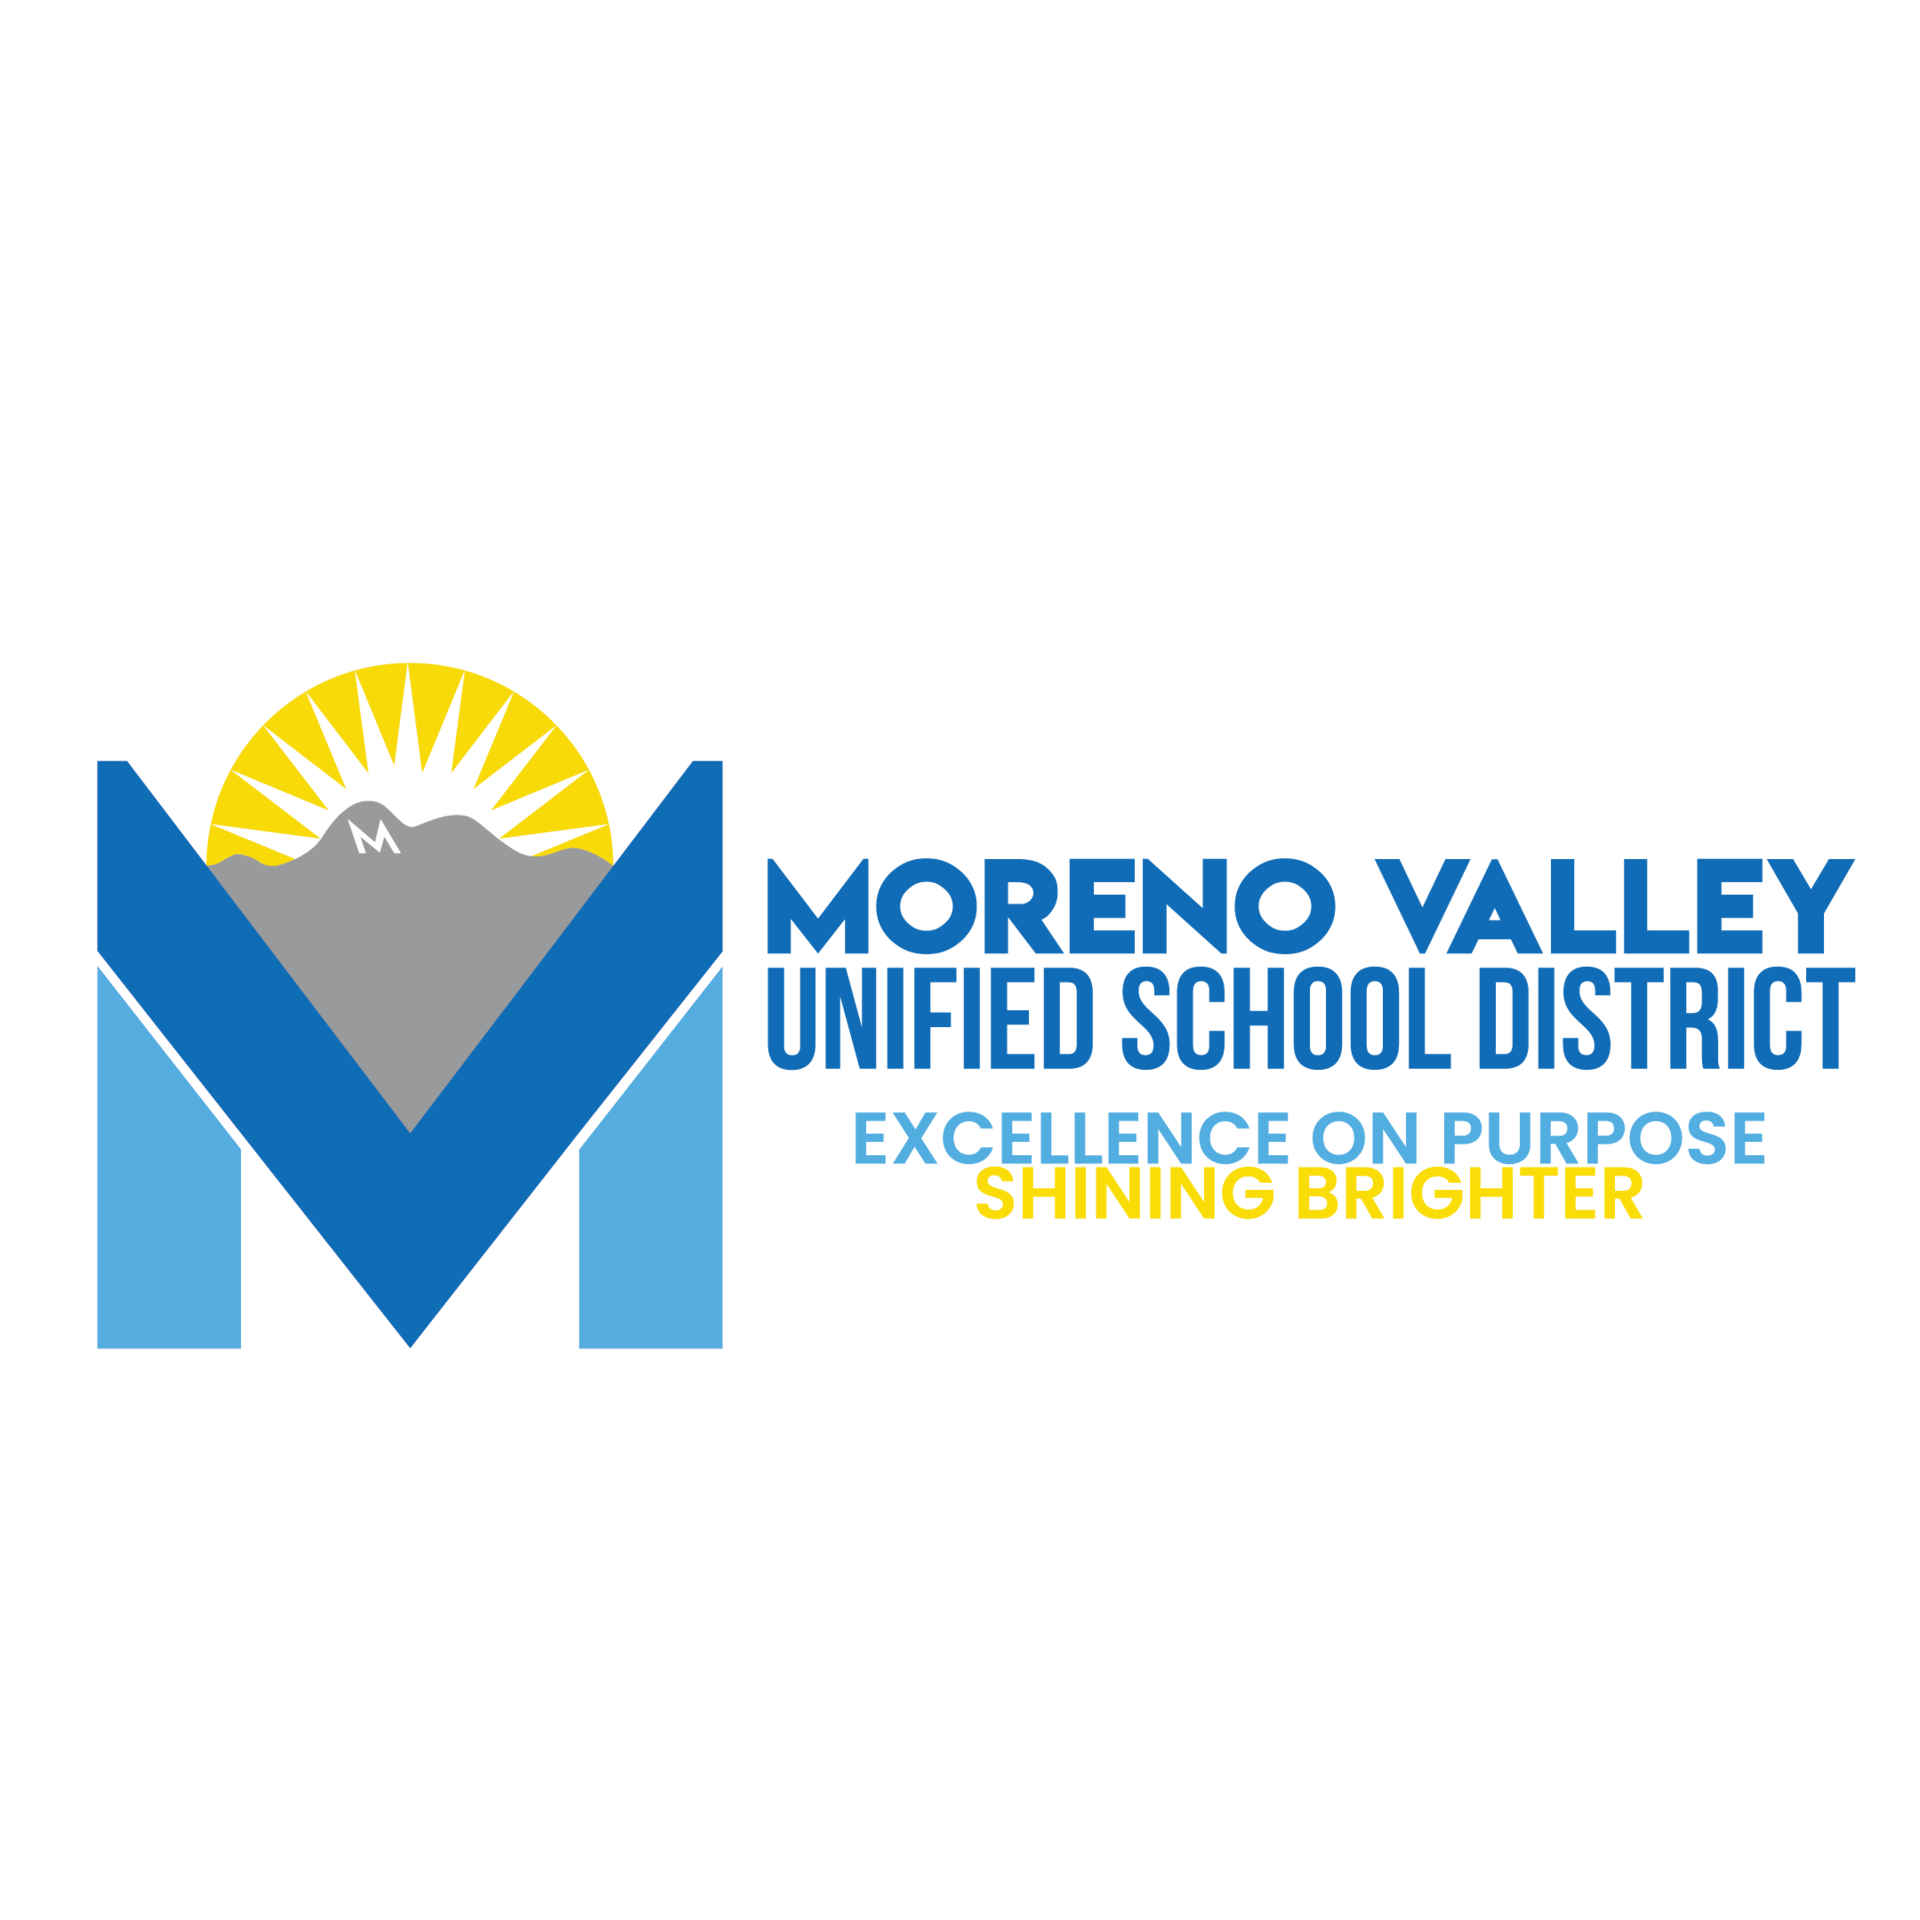 Moreno Valley Unified School District logo